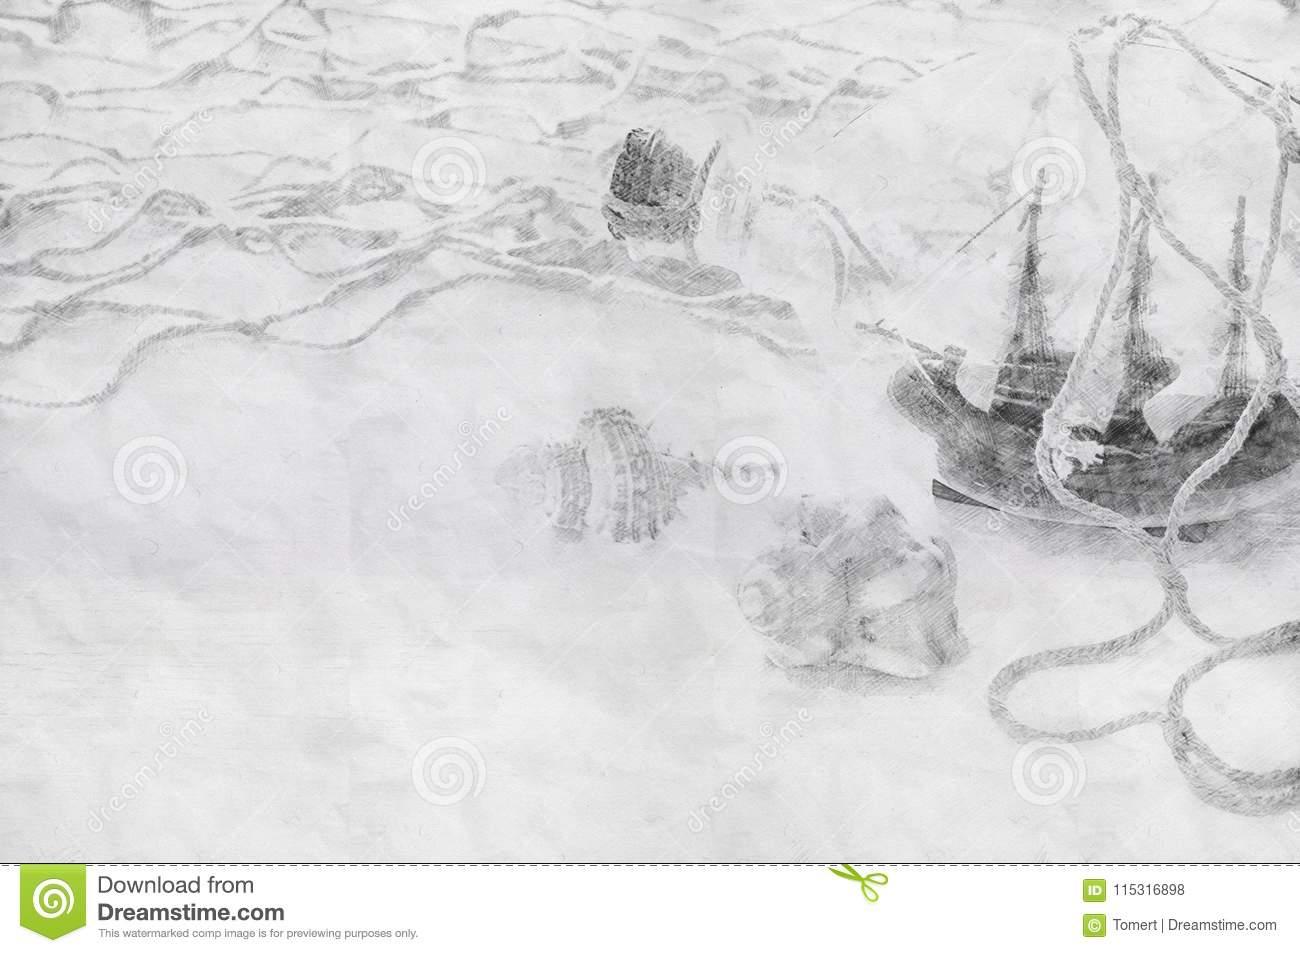 Abstract background of boat in the bottle pencil sketch painting style black and white